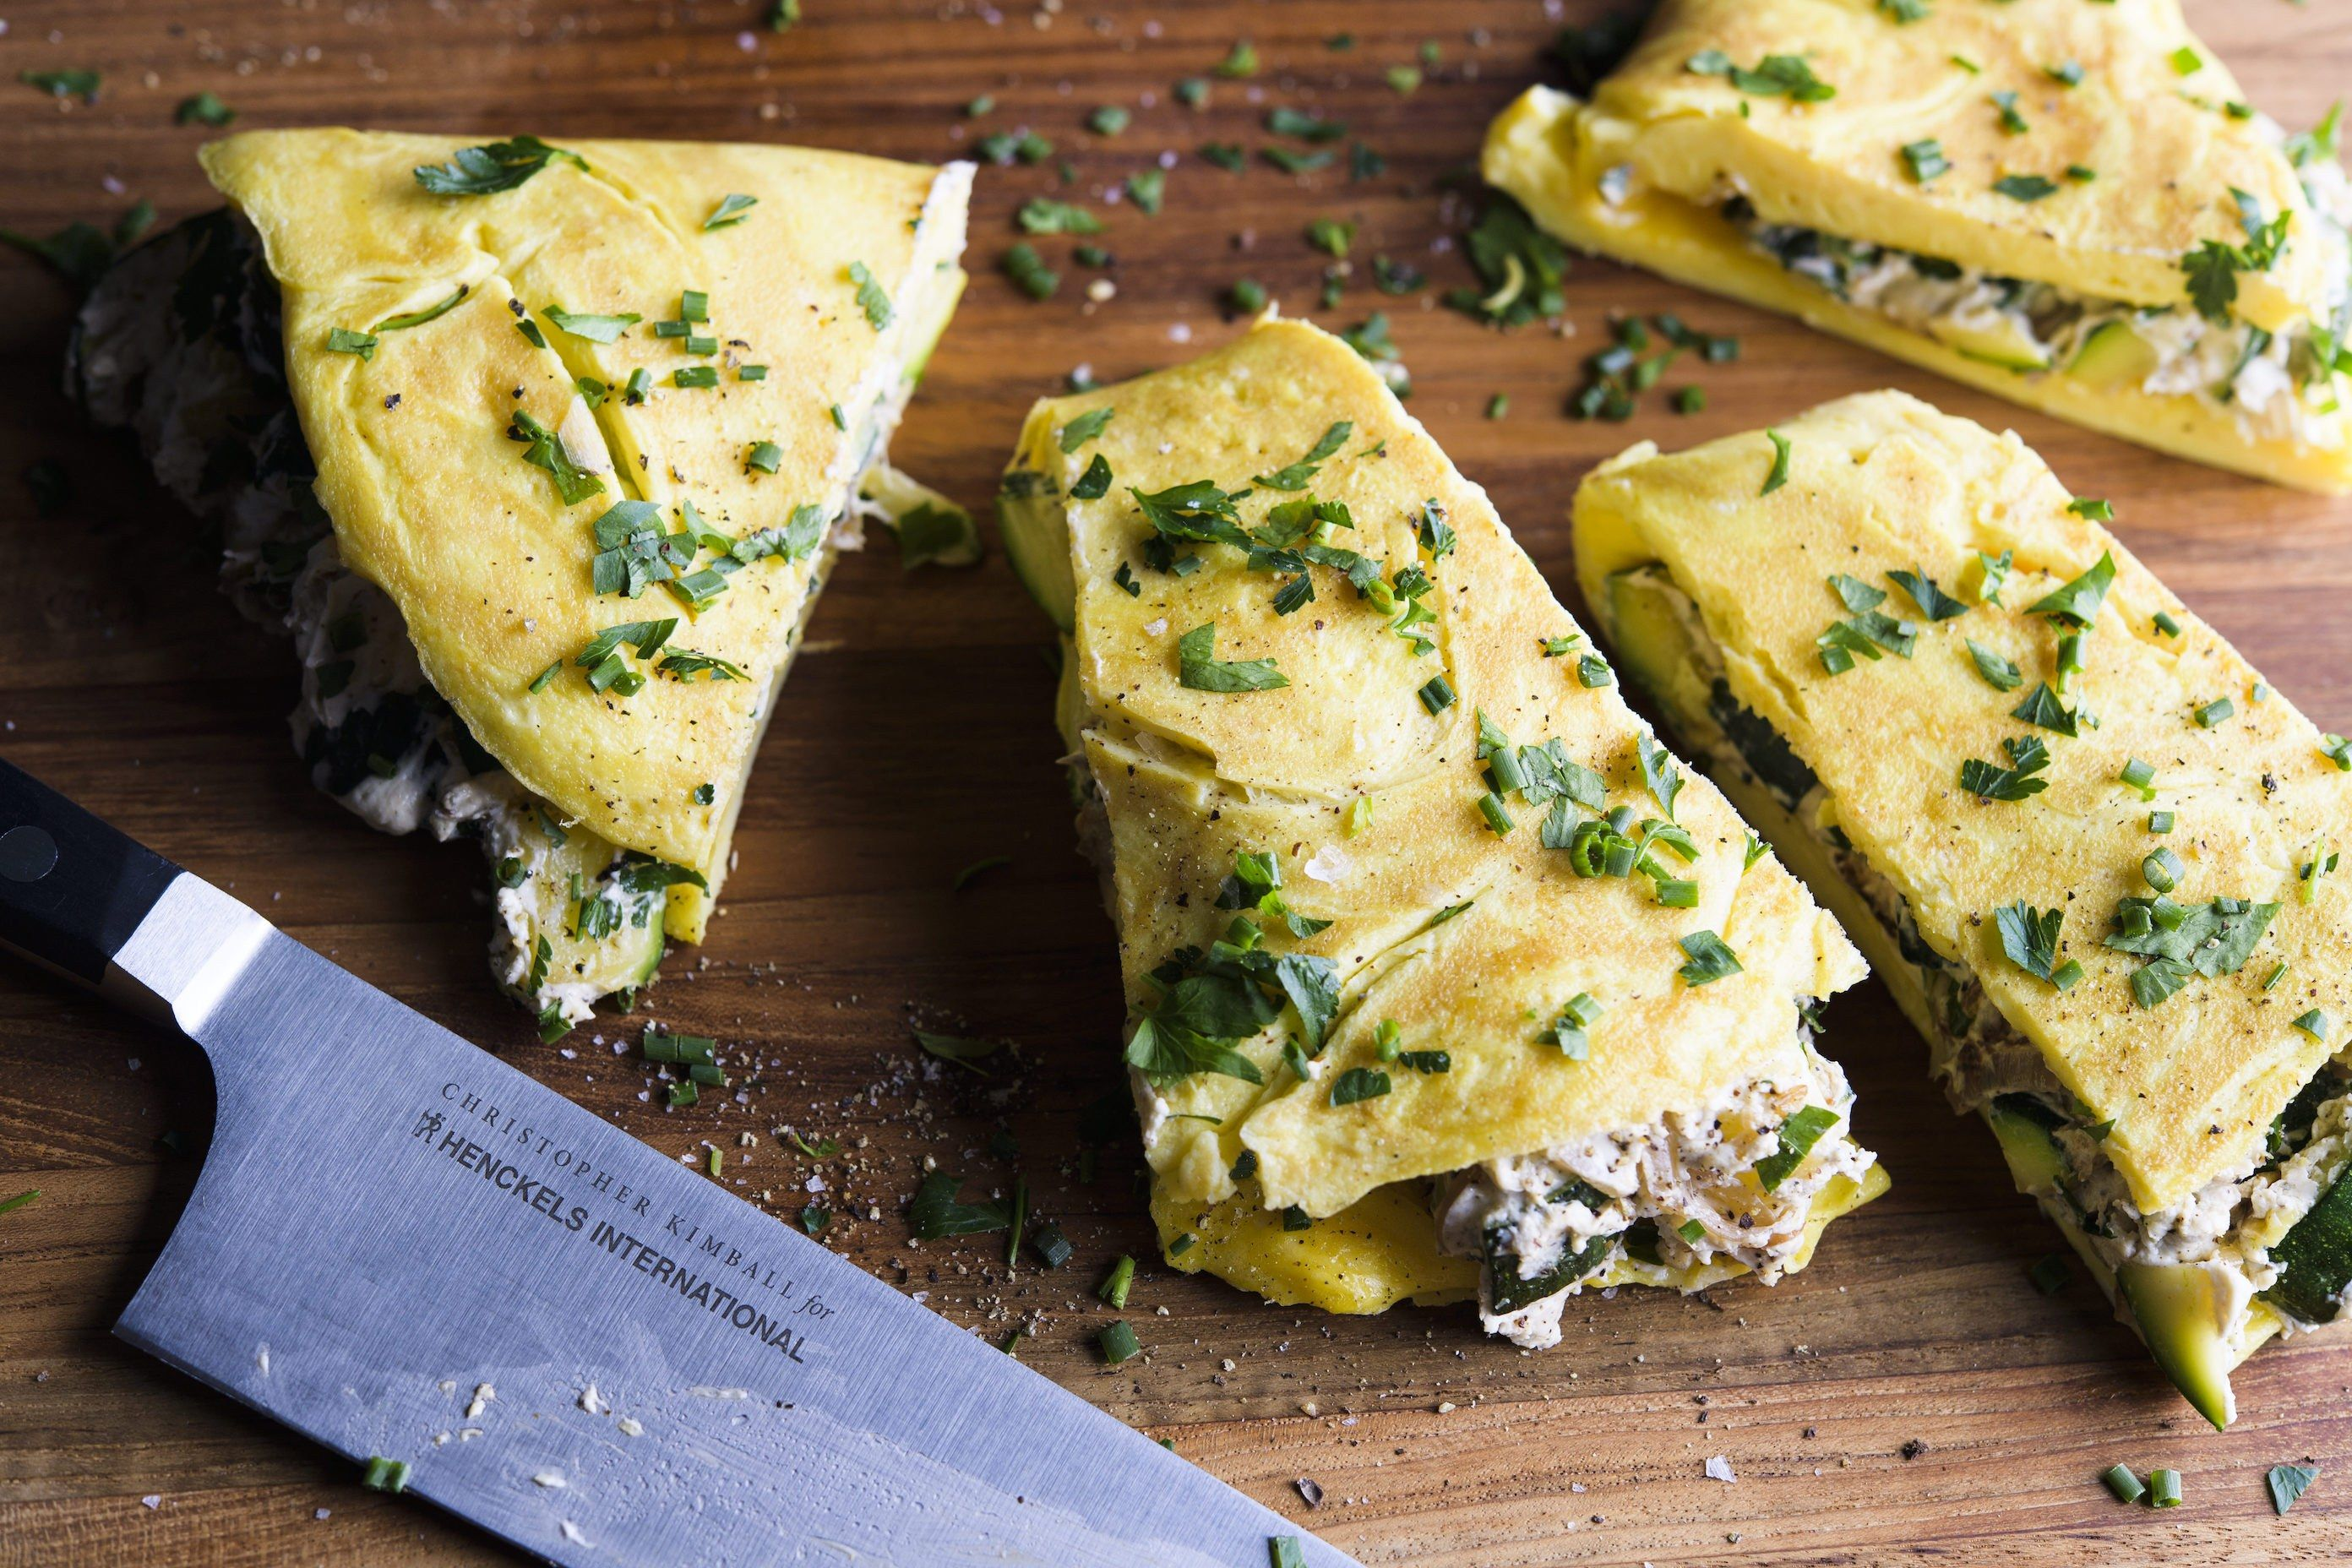 Zucchini and Goat Cheese Omelet